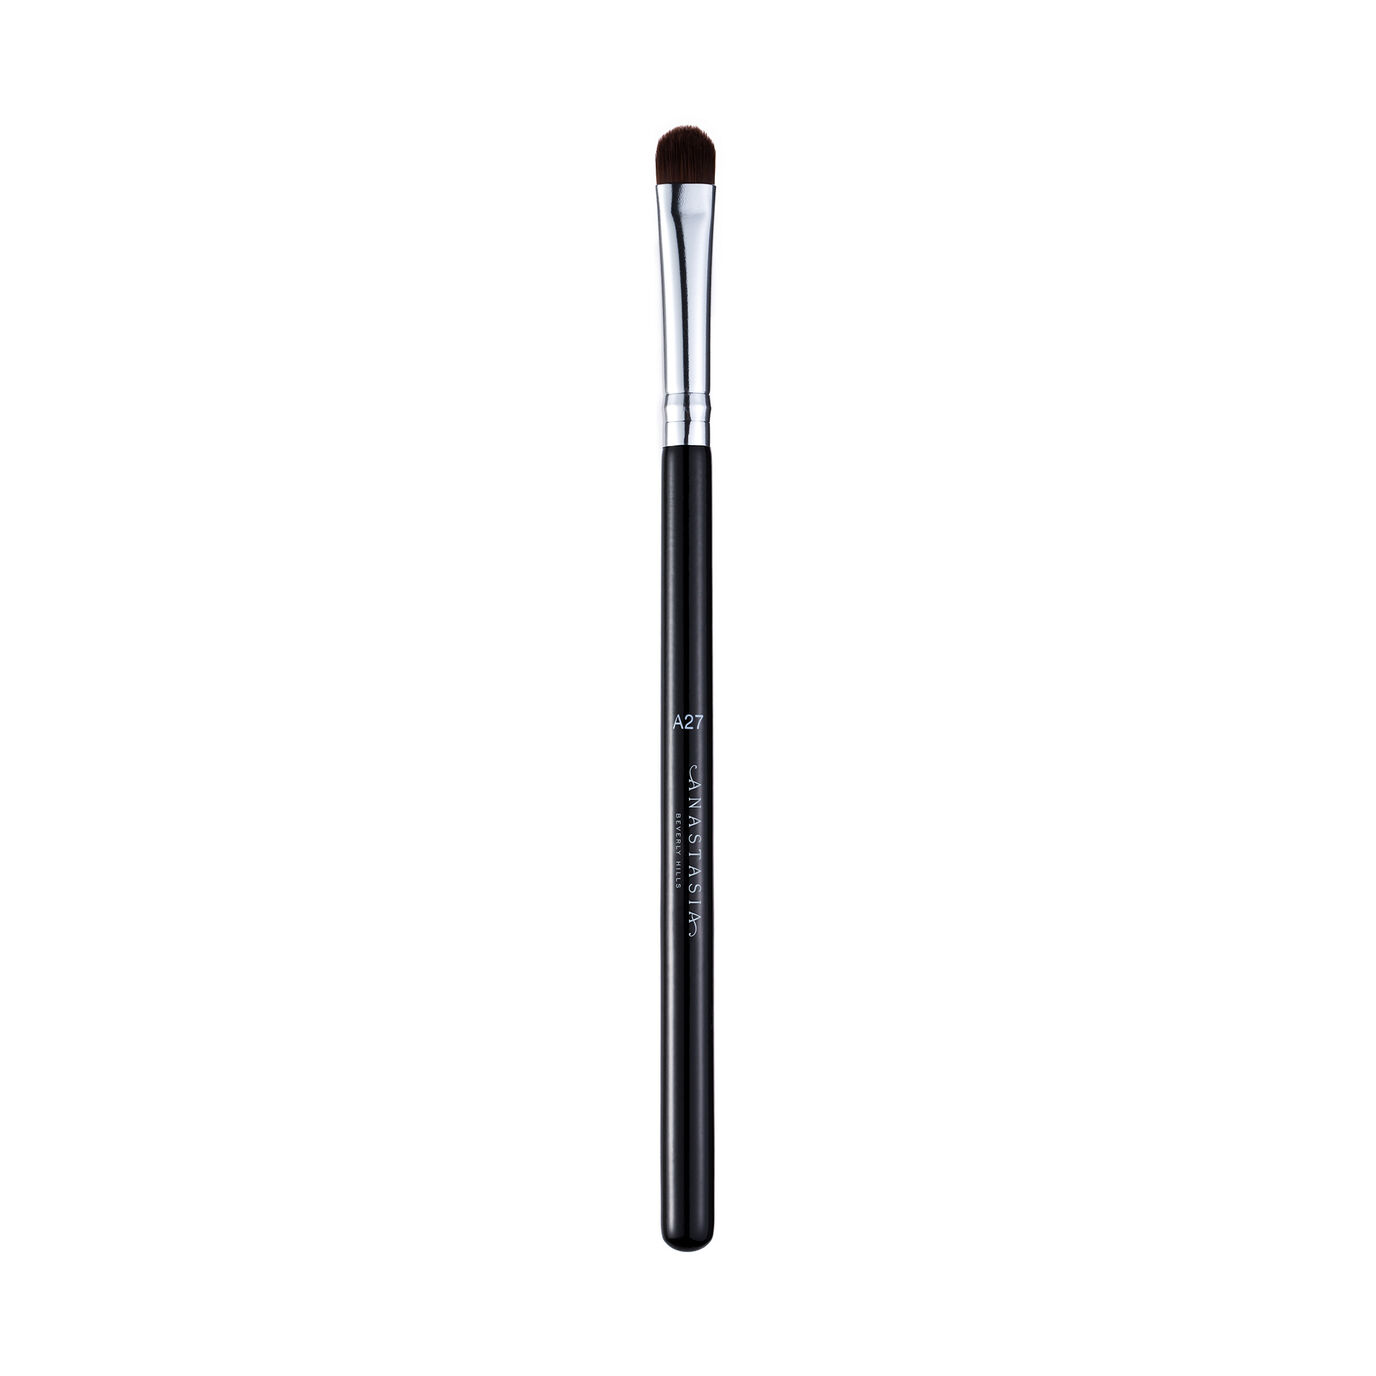 A27 Pro Brush - Small Firm Shader Brush